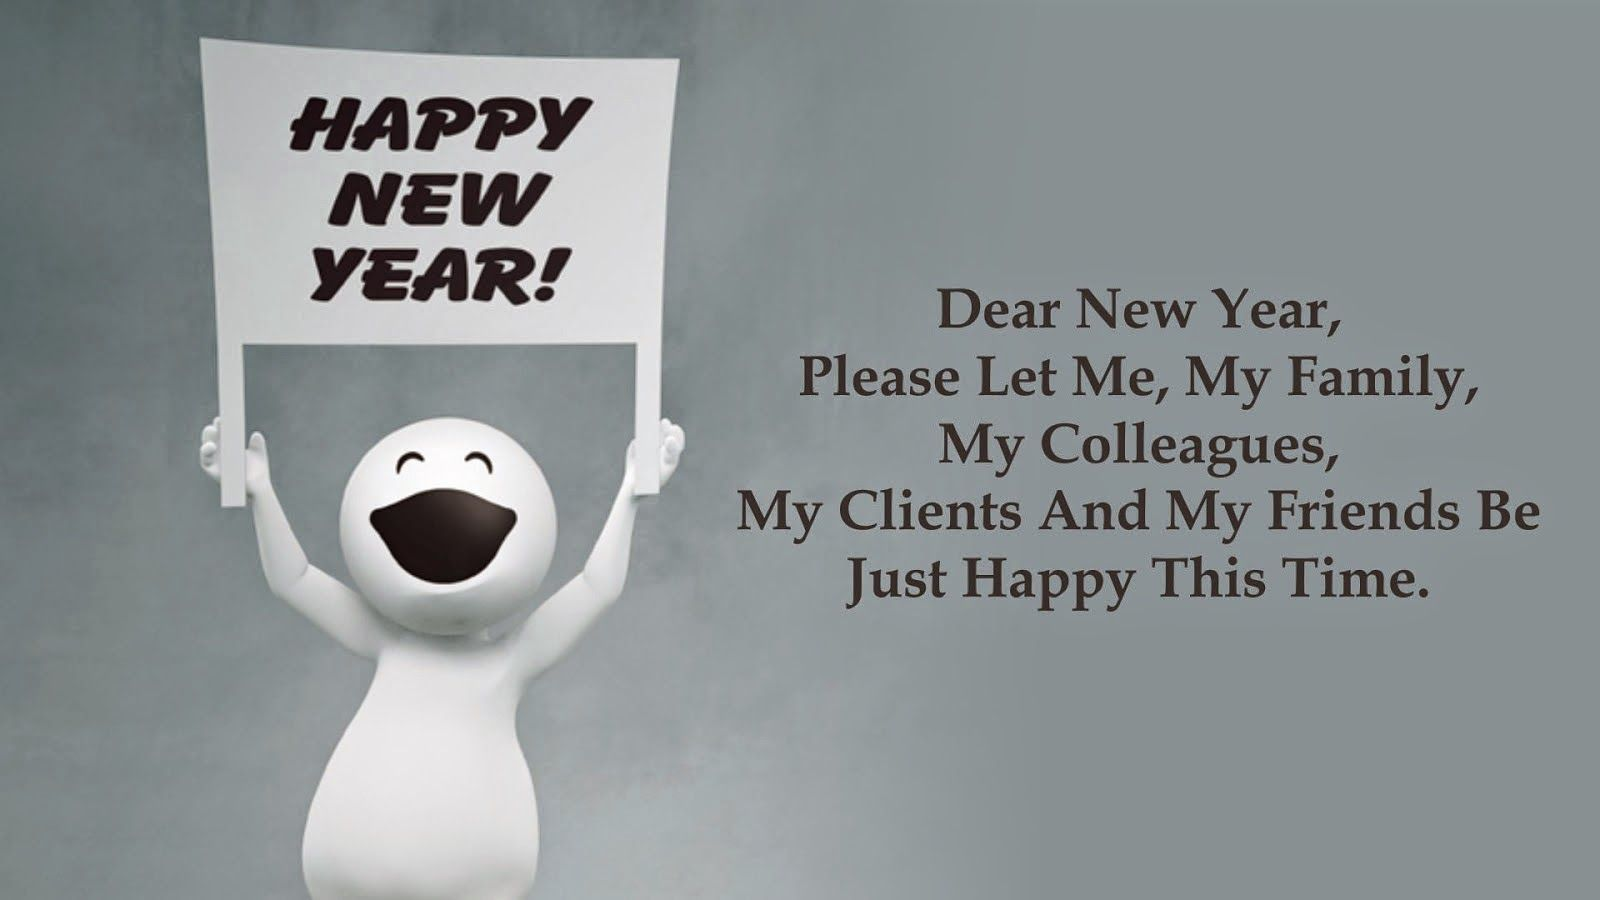 Funny Happy New Year Wishes Happy New Year Quotes New Year Quotes Funny Hilarious Happy New Year Quotes Funny